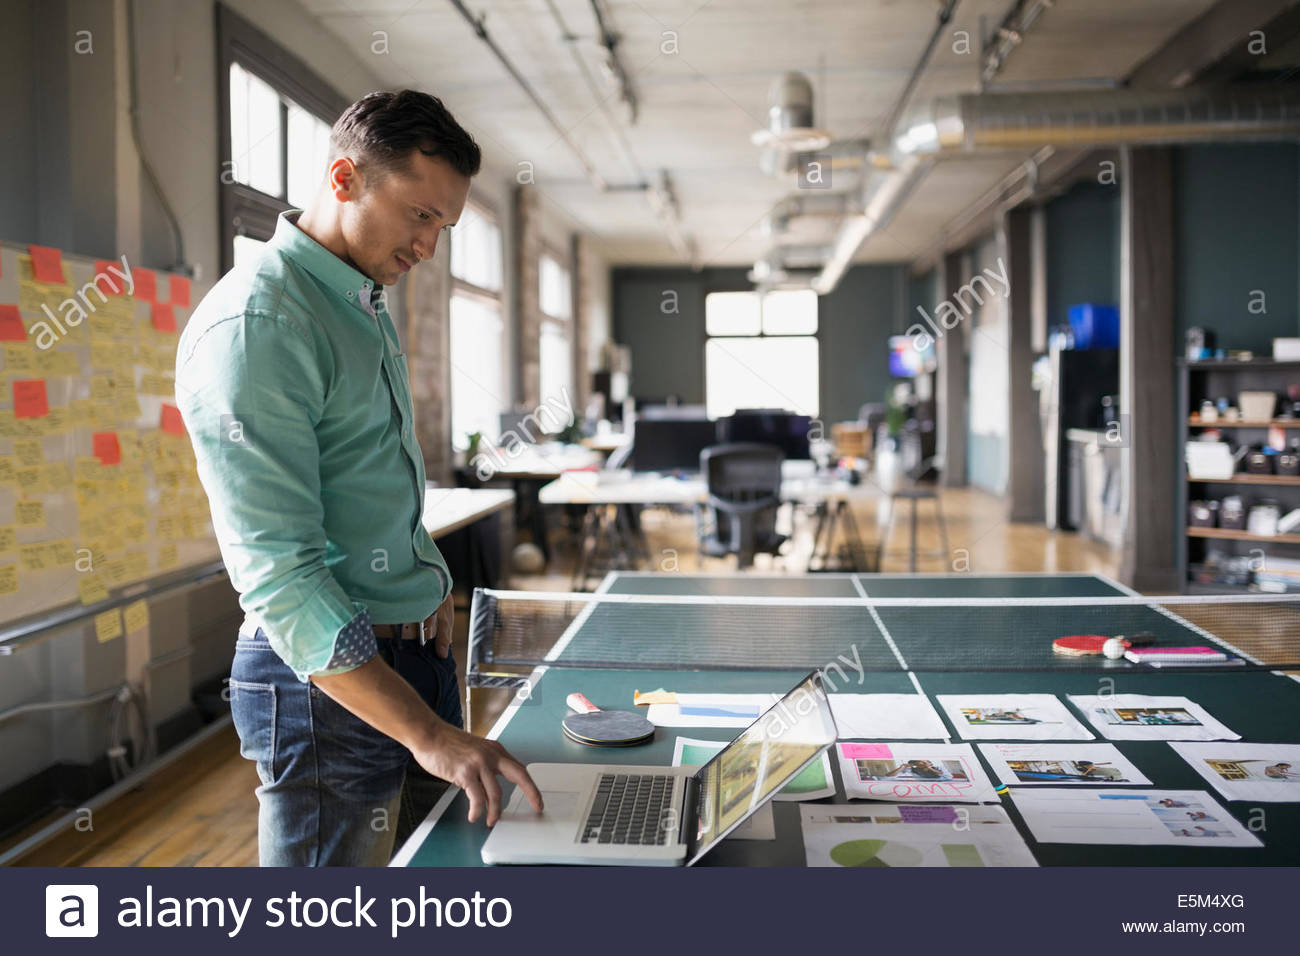 Creative businessman using laptop on ping pong table - Stock Image